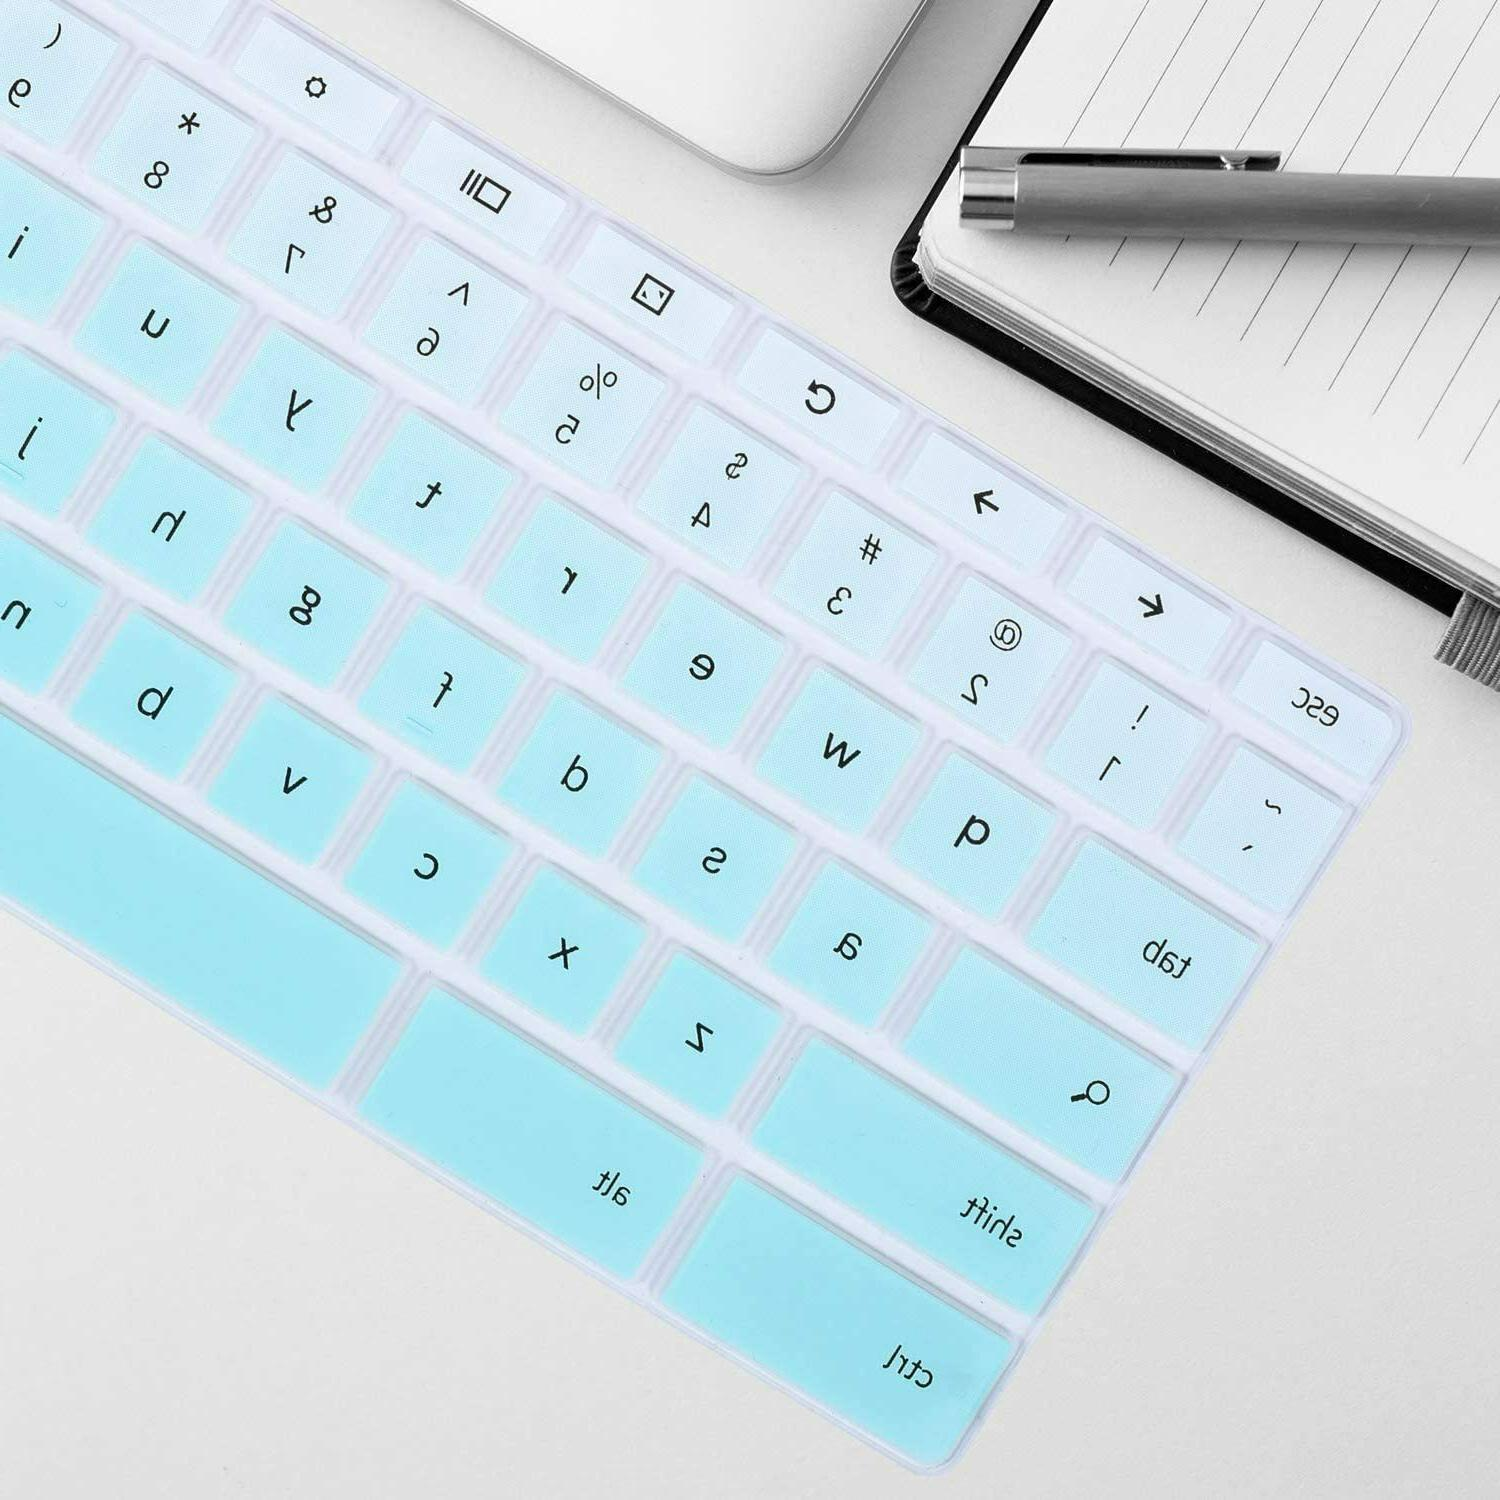 Keyboard Cover Compatible with 11.6 inch Chromebook EL1819